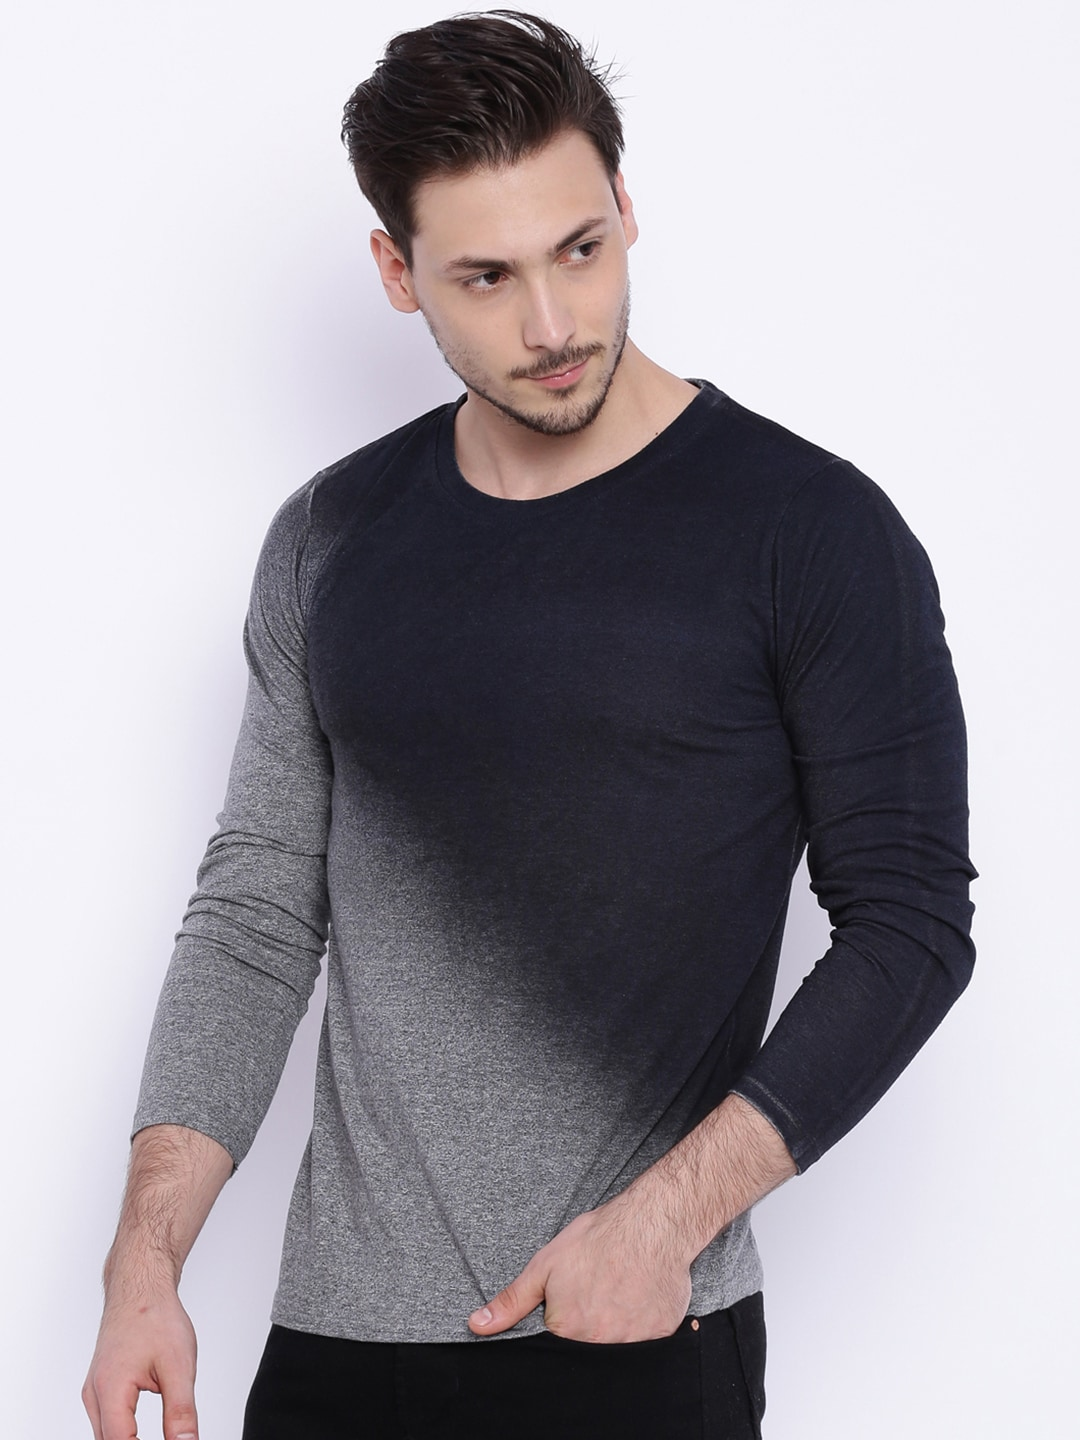 Long sleeve t shirts for men online artee shirt for Full sleeves t shirts for men